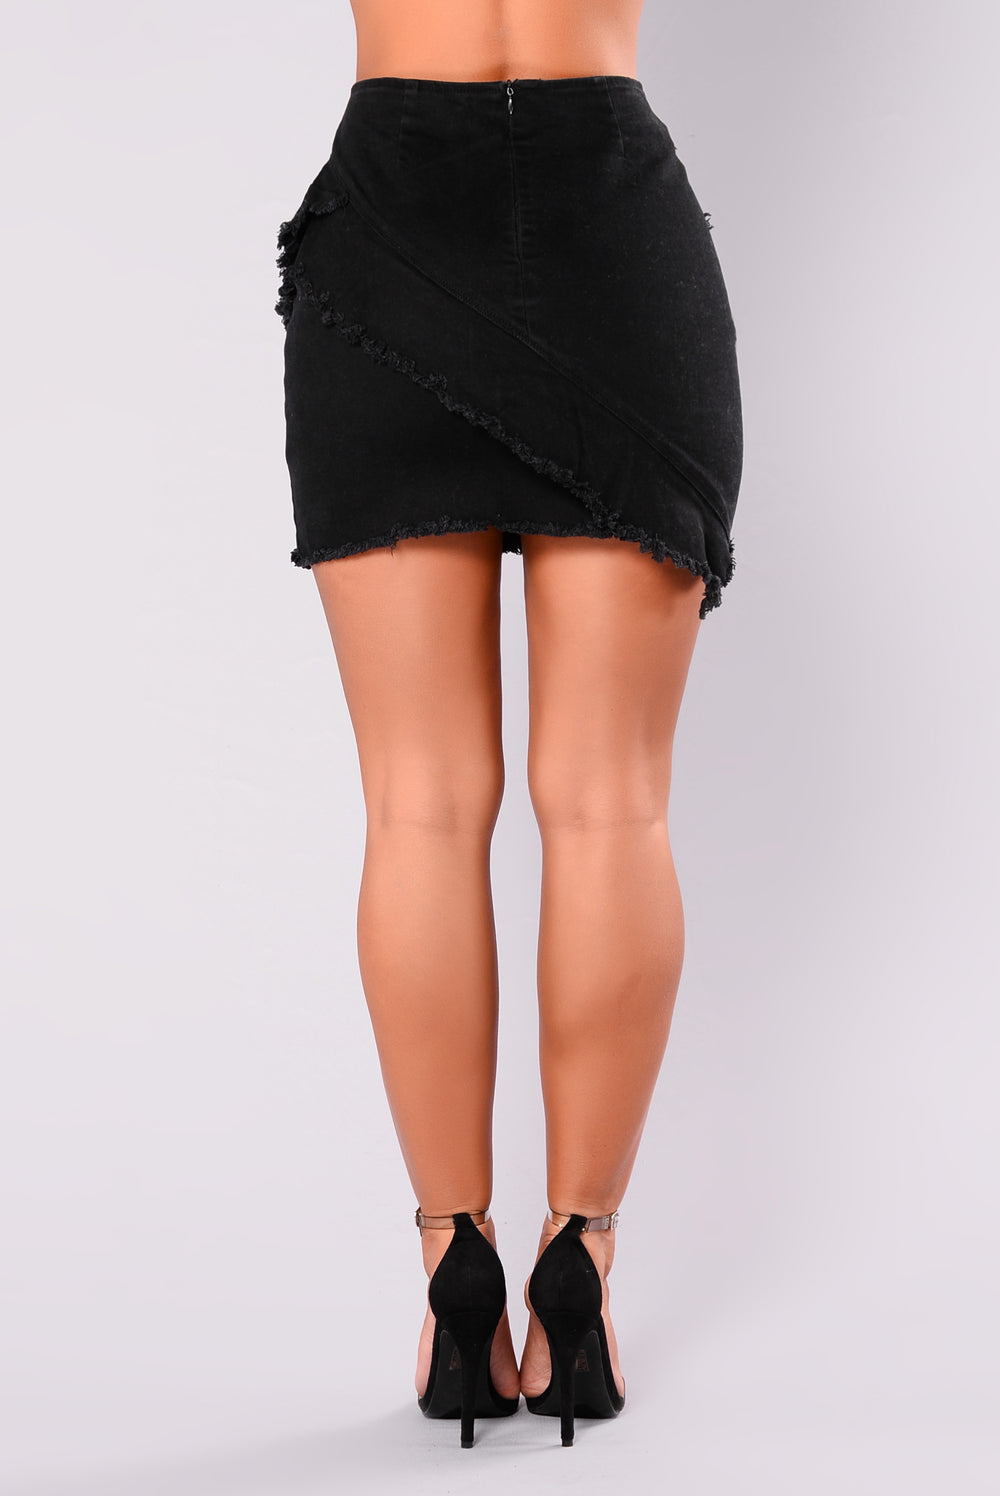 Clarice Denim Skirt - Black